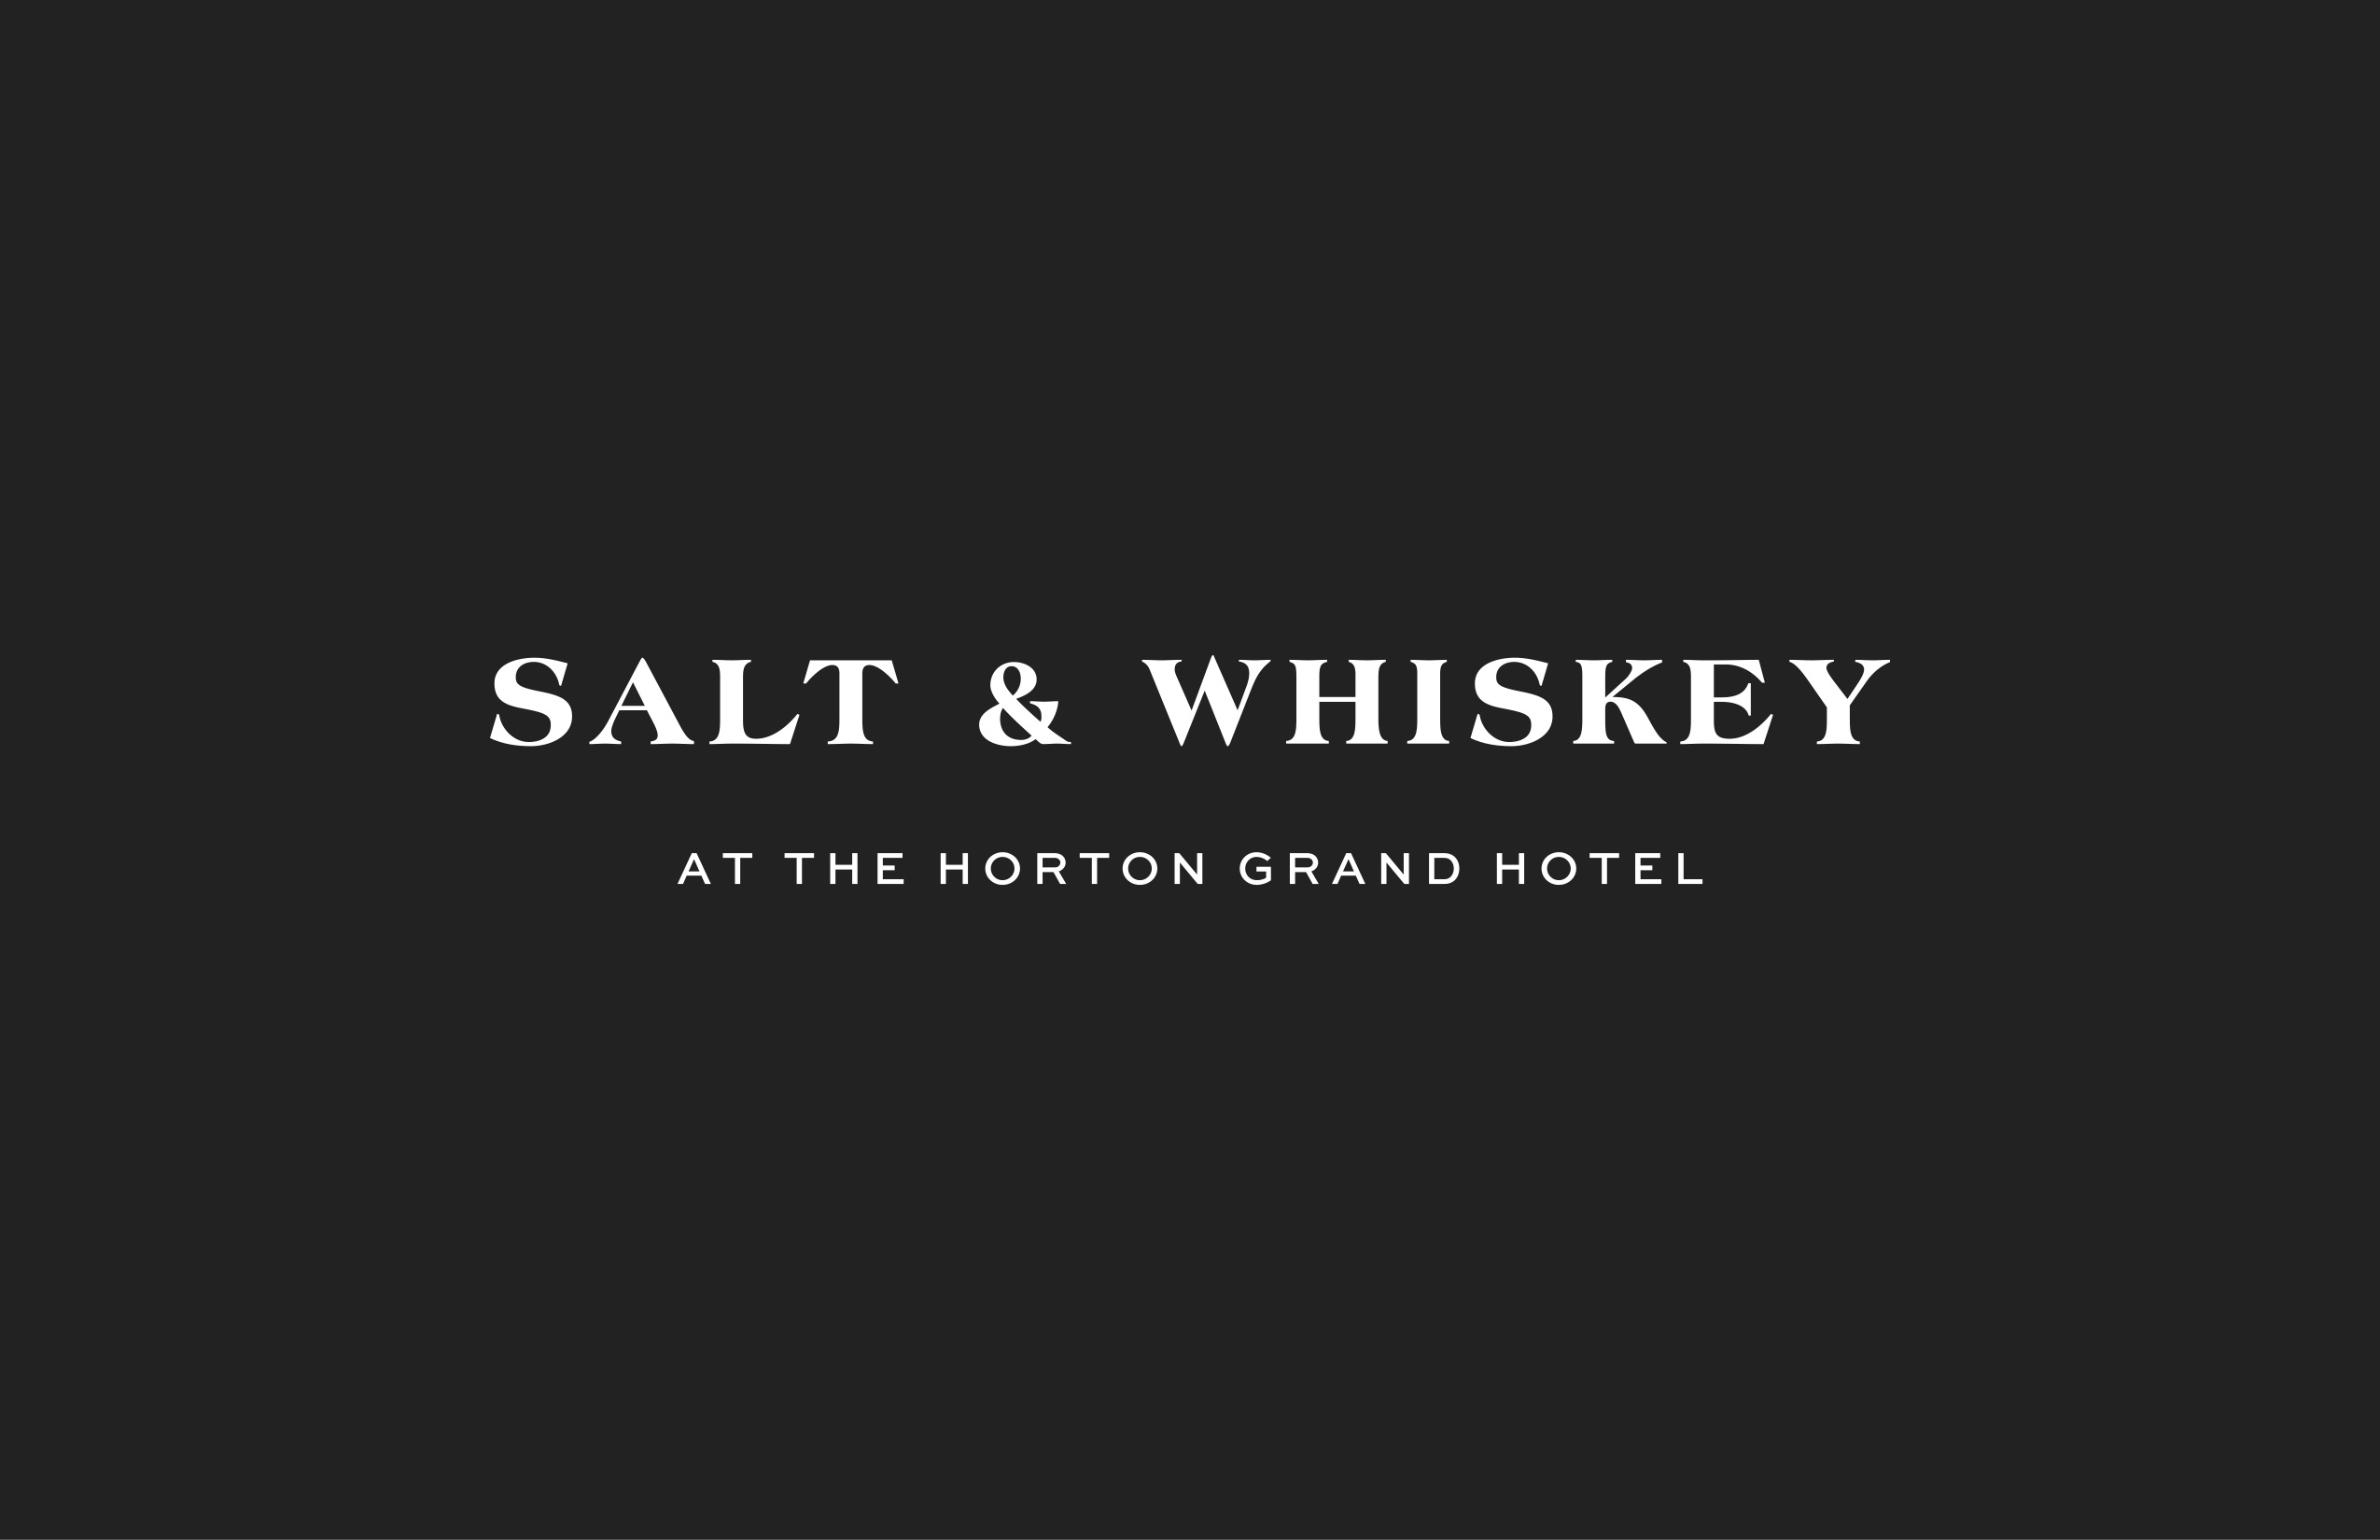 130-Year-Old Horton Grand Hotel Revamps Bar and Restaurant - Eater ...